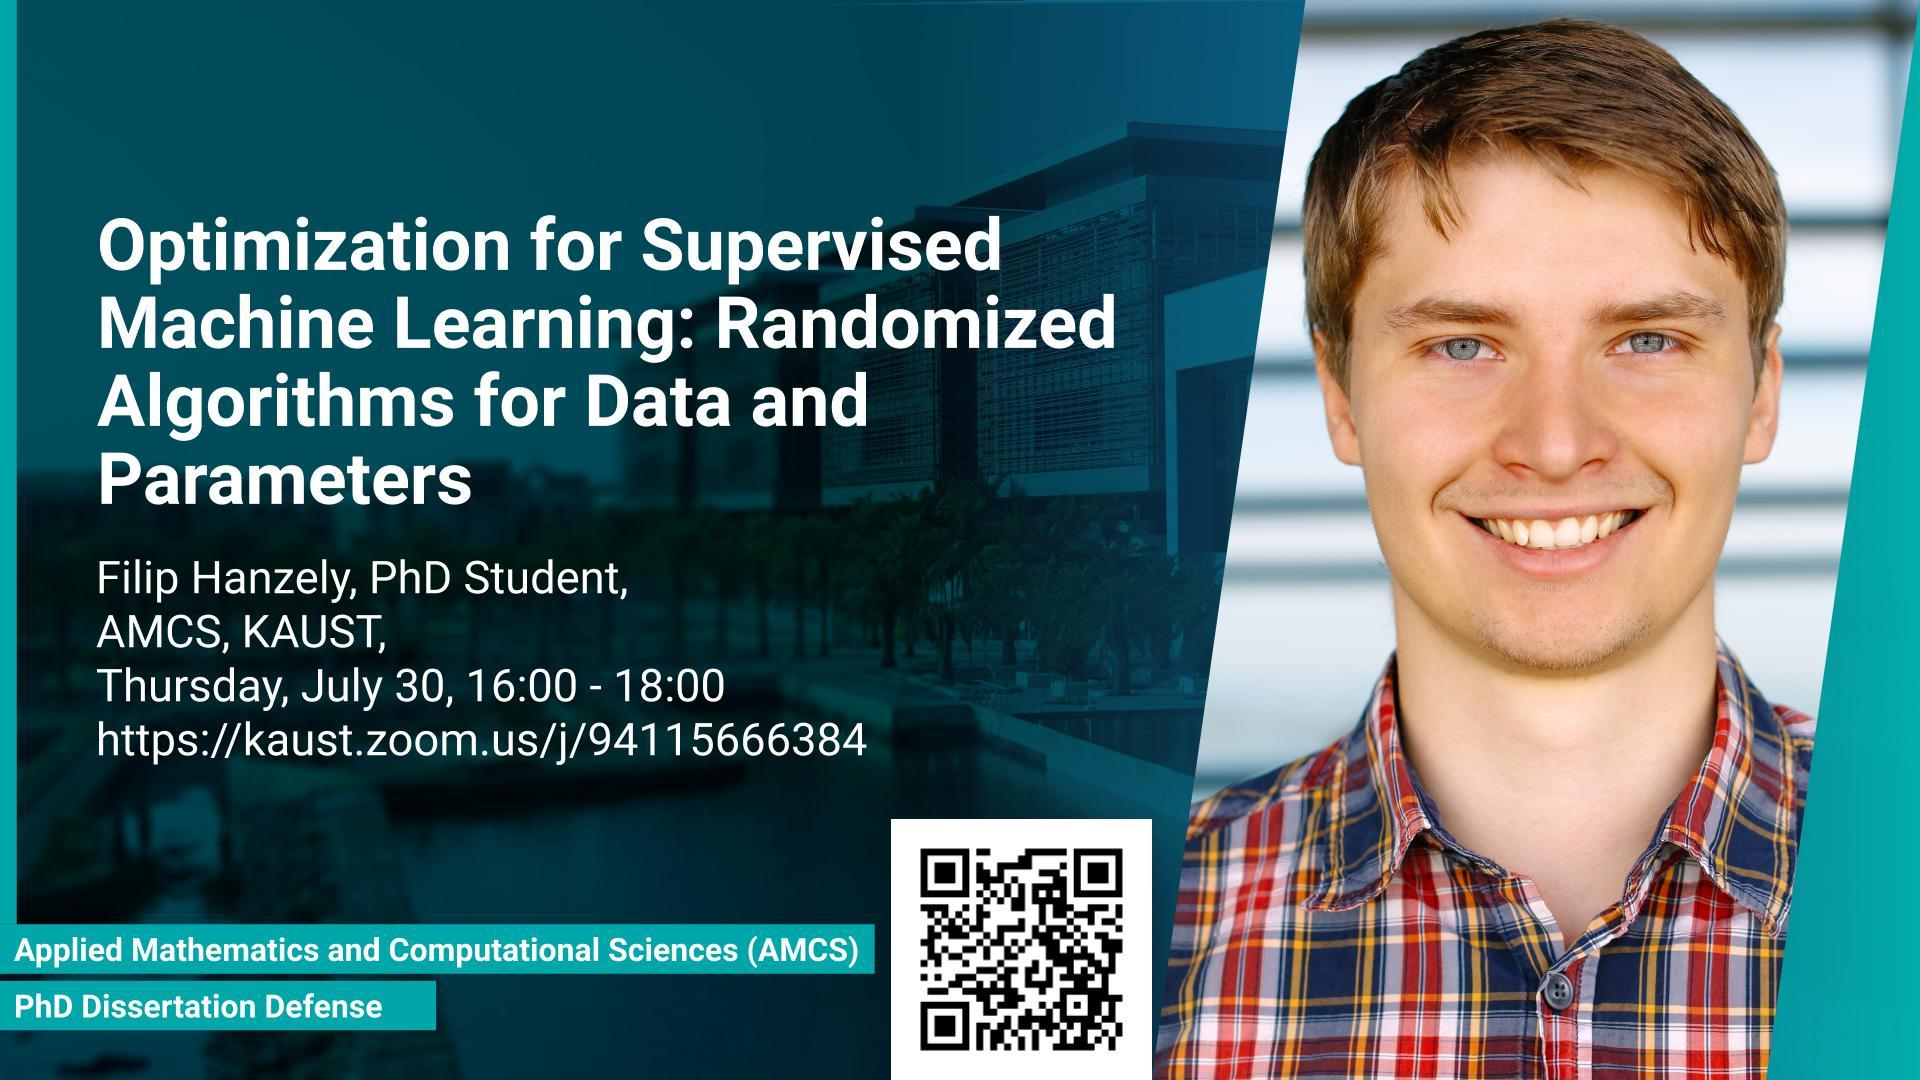 KAUST CEMSE AMCS PhD Dissertation Defense Filip Hanzely Optimization for supervised machine learning randomized algorithms for data and parameters